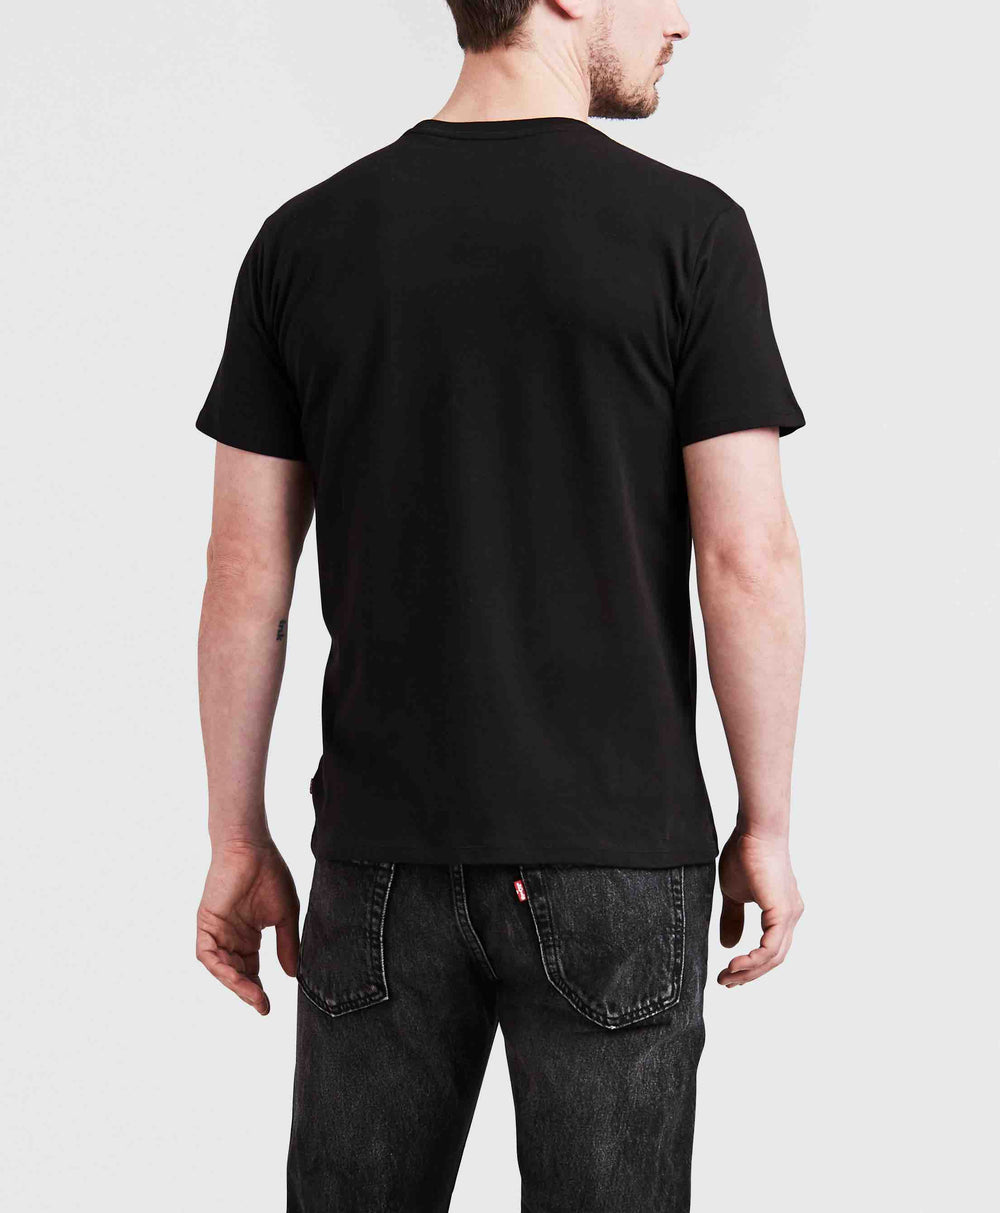 GRAPHIC SETIN NECK 2 LEVIS LOGO BLACK